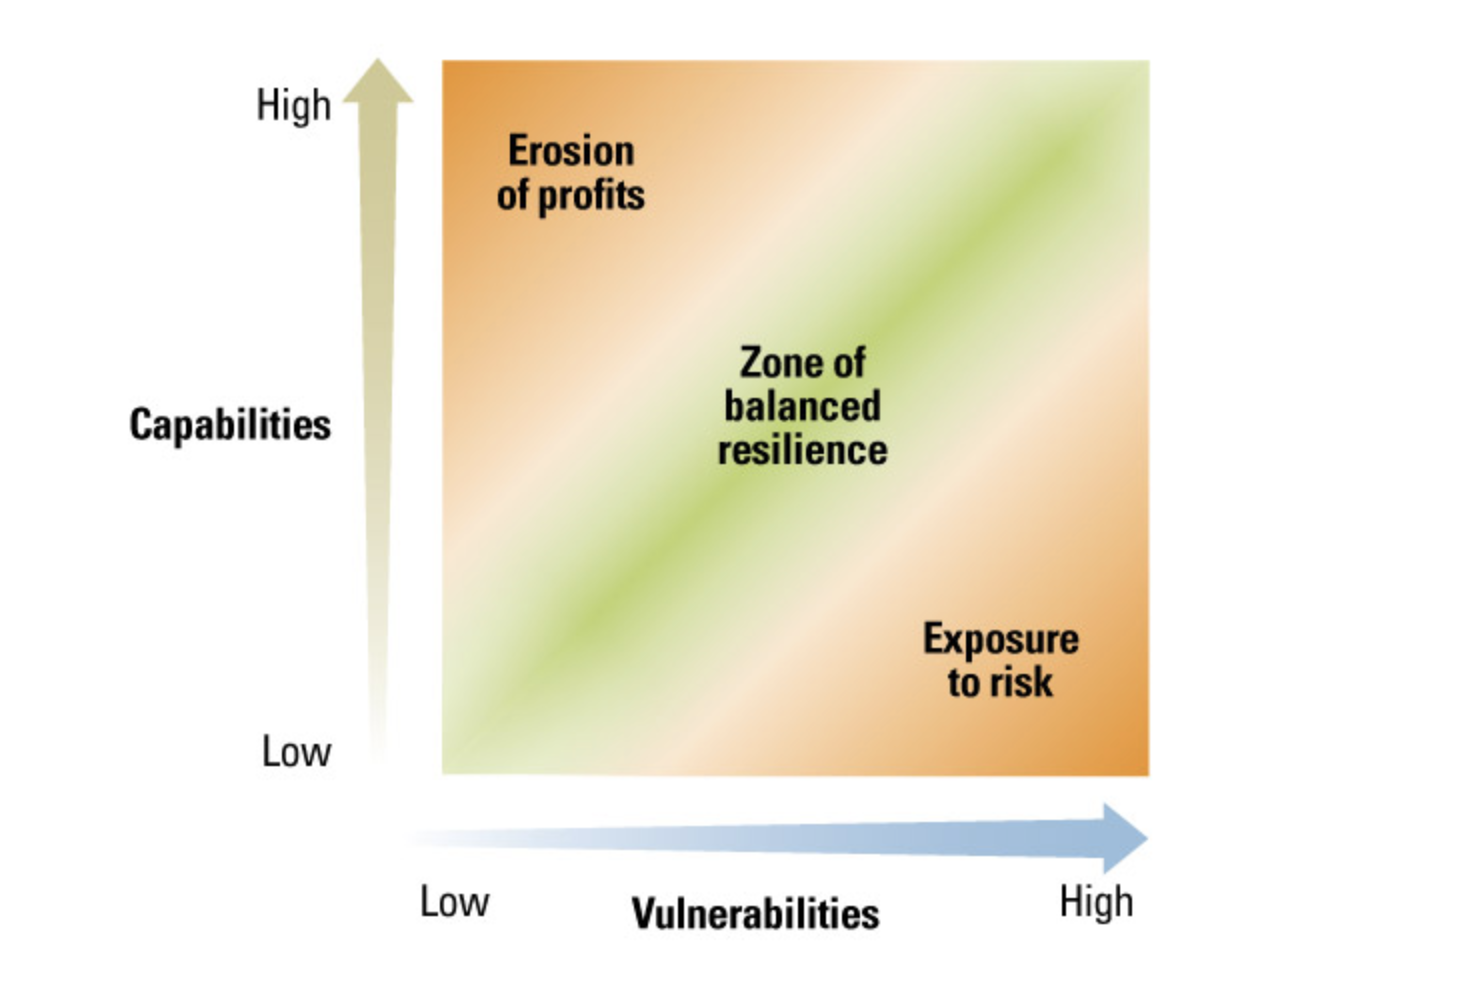 balance risk and capabilities to overcome